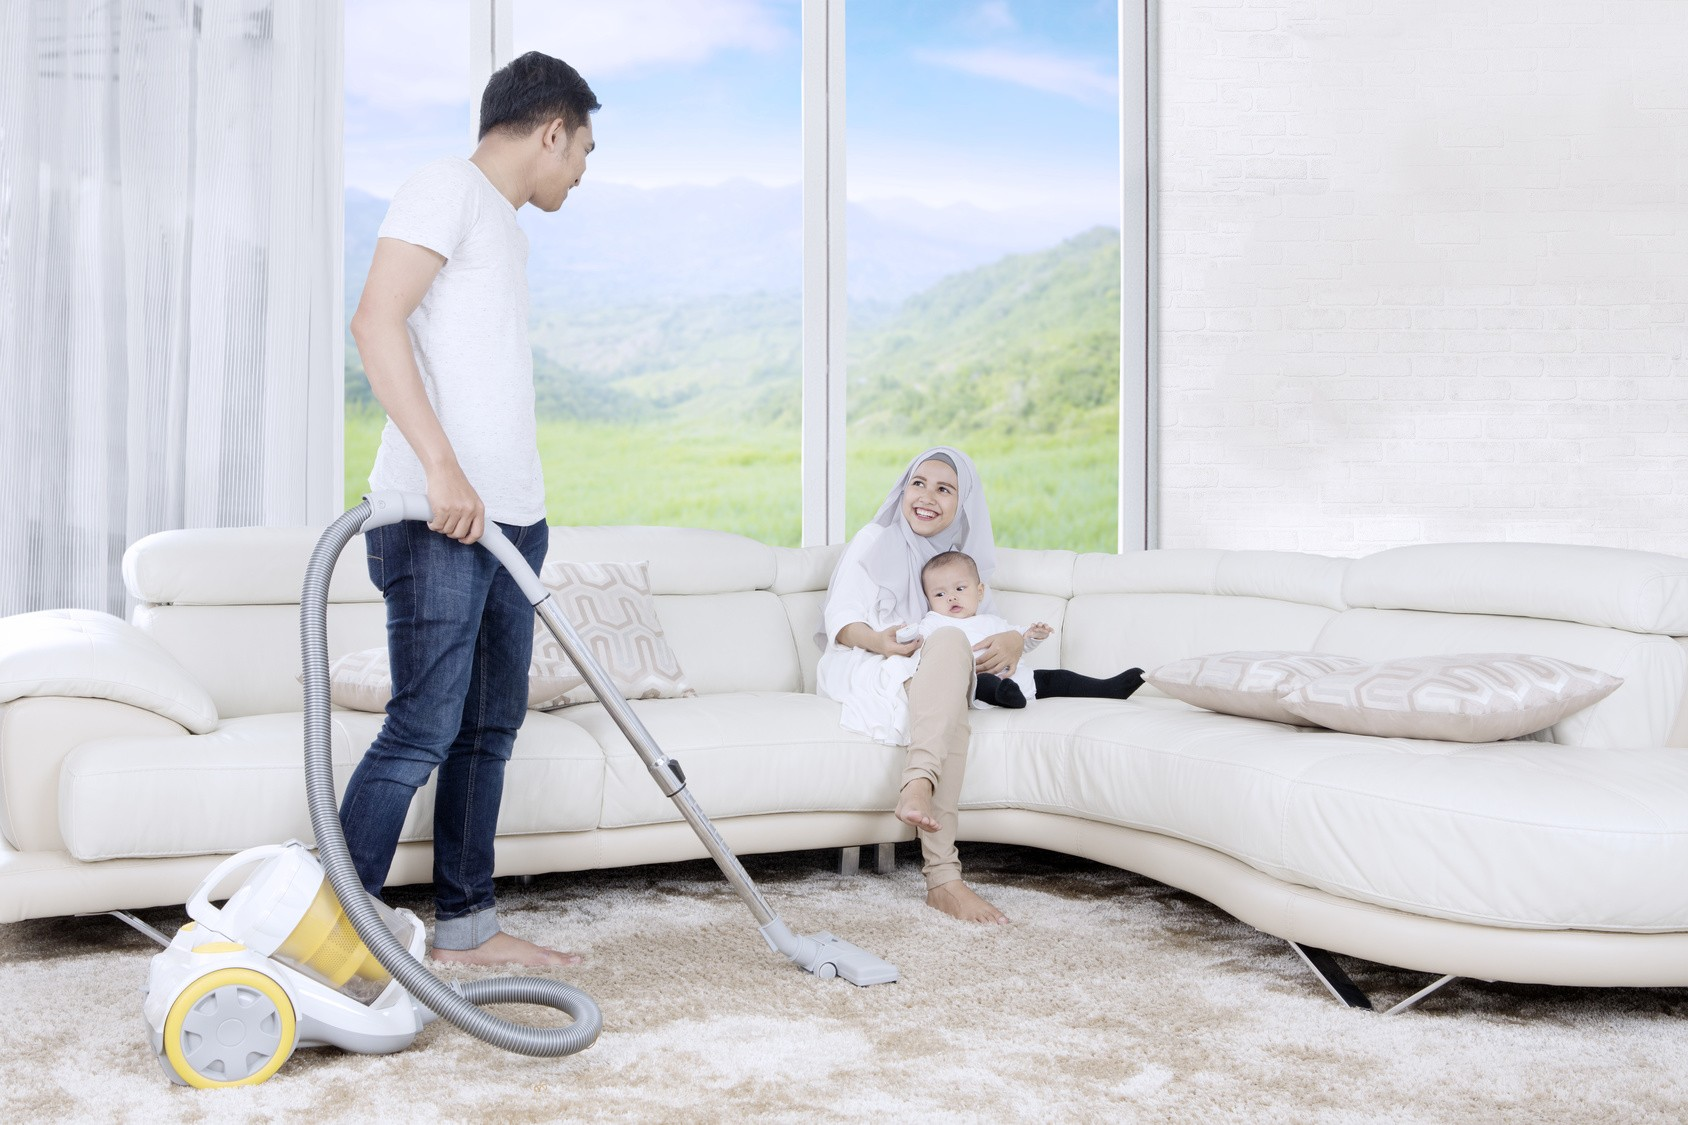 How To Keep Your Carpet Clean When You Have Kids